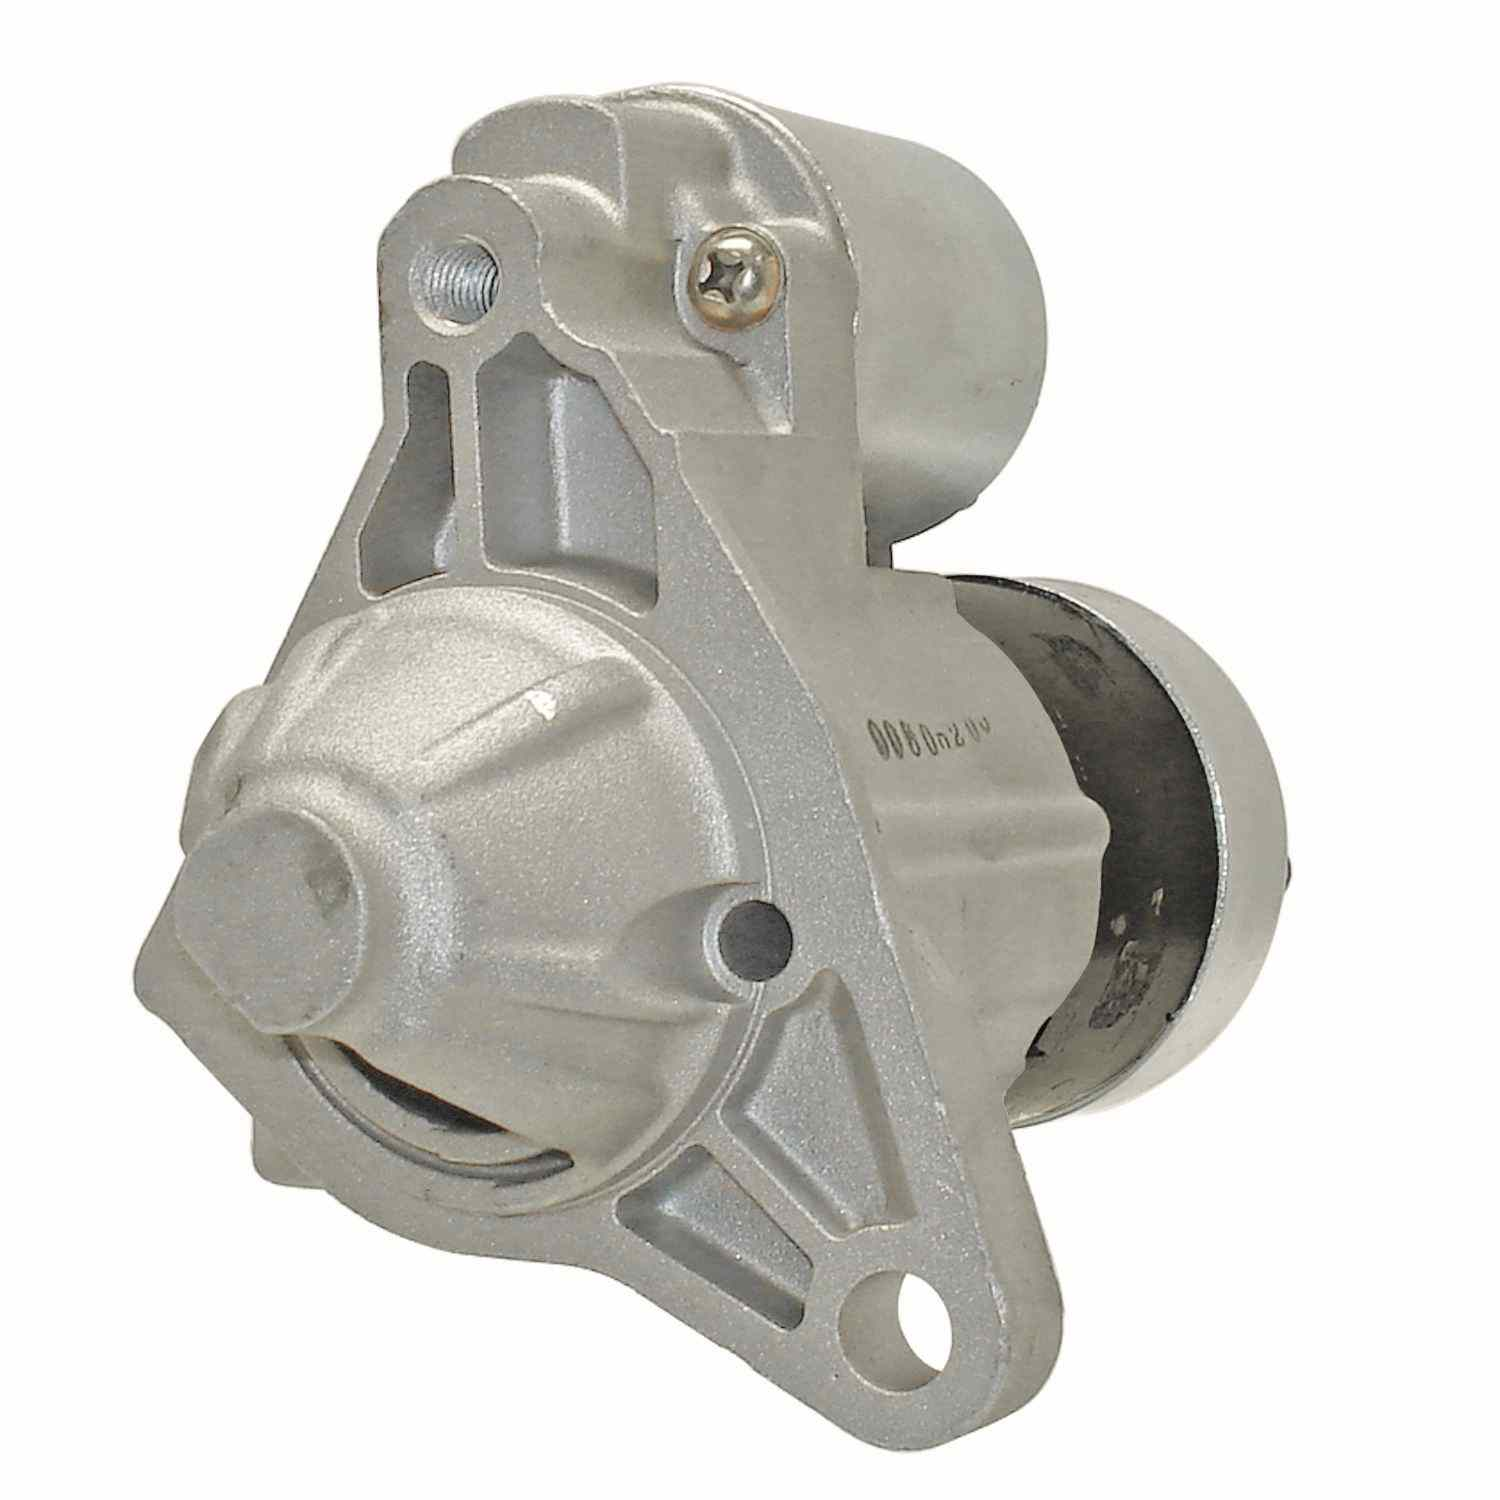 ACDELCO GOLD/PROFESSIONAL - Reman Starter Motor - DCC 336-1782